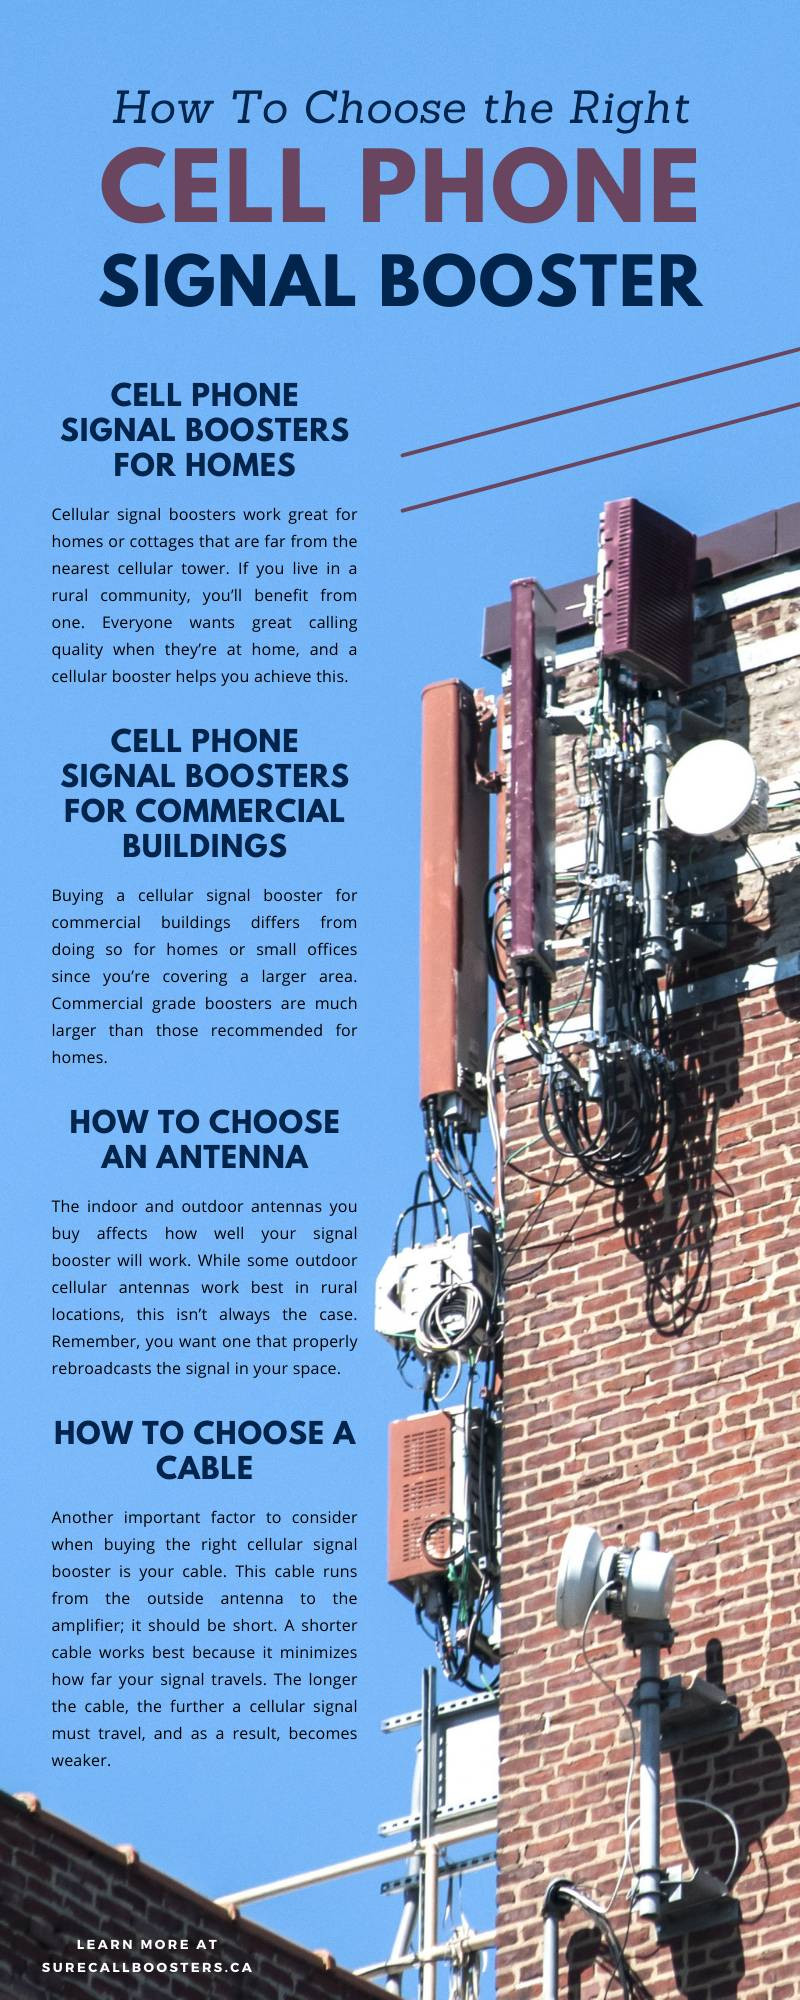 How To Choose the Right Cell Phone Signal Booster